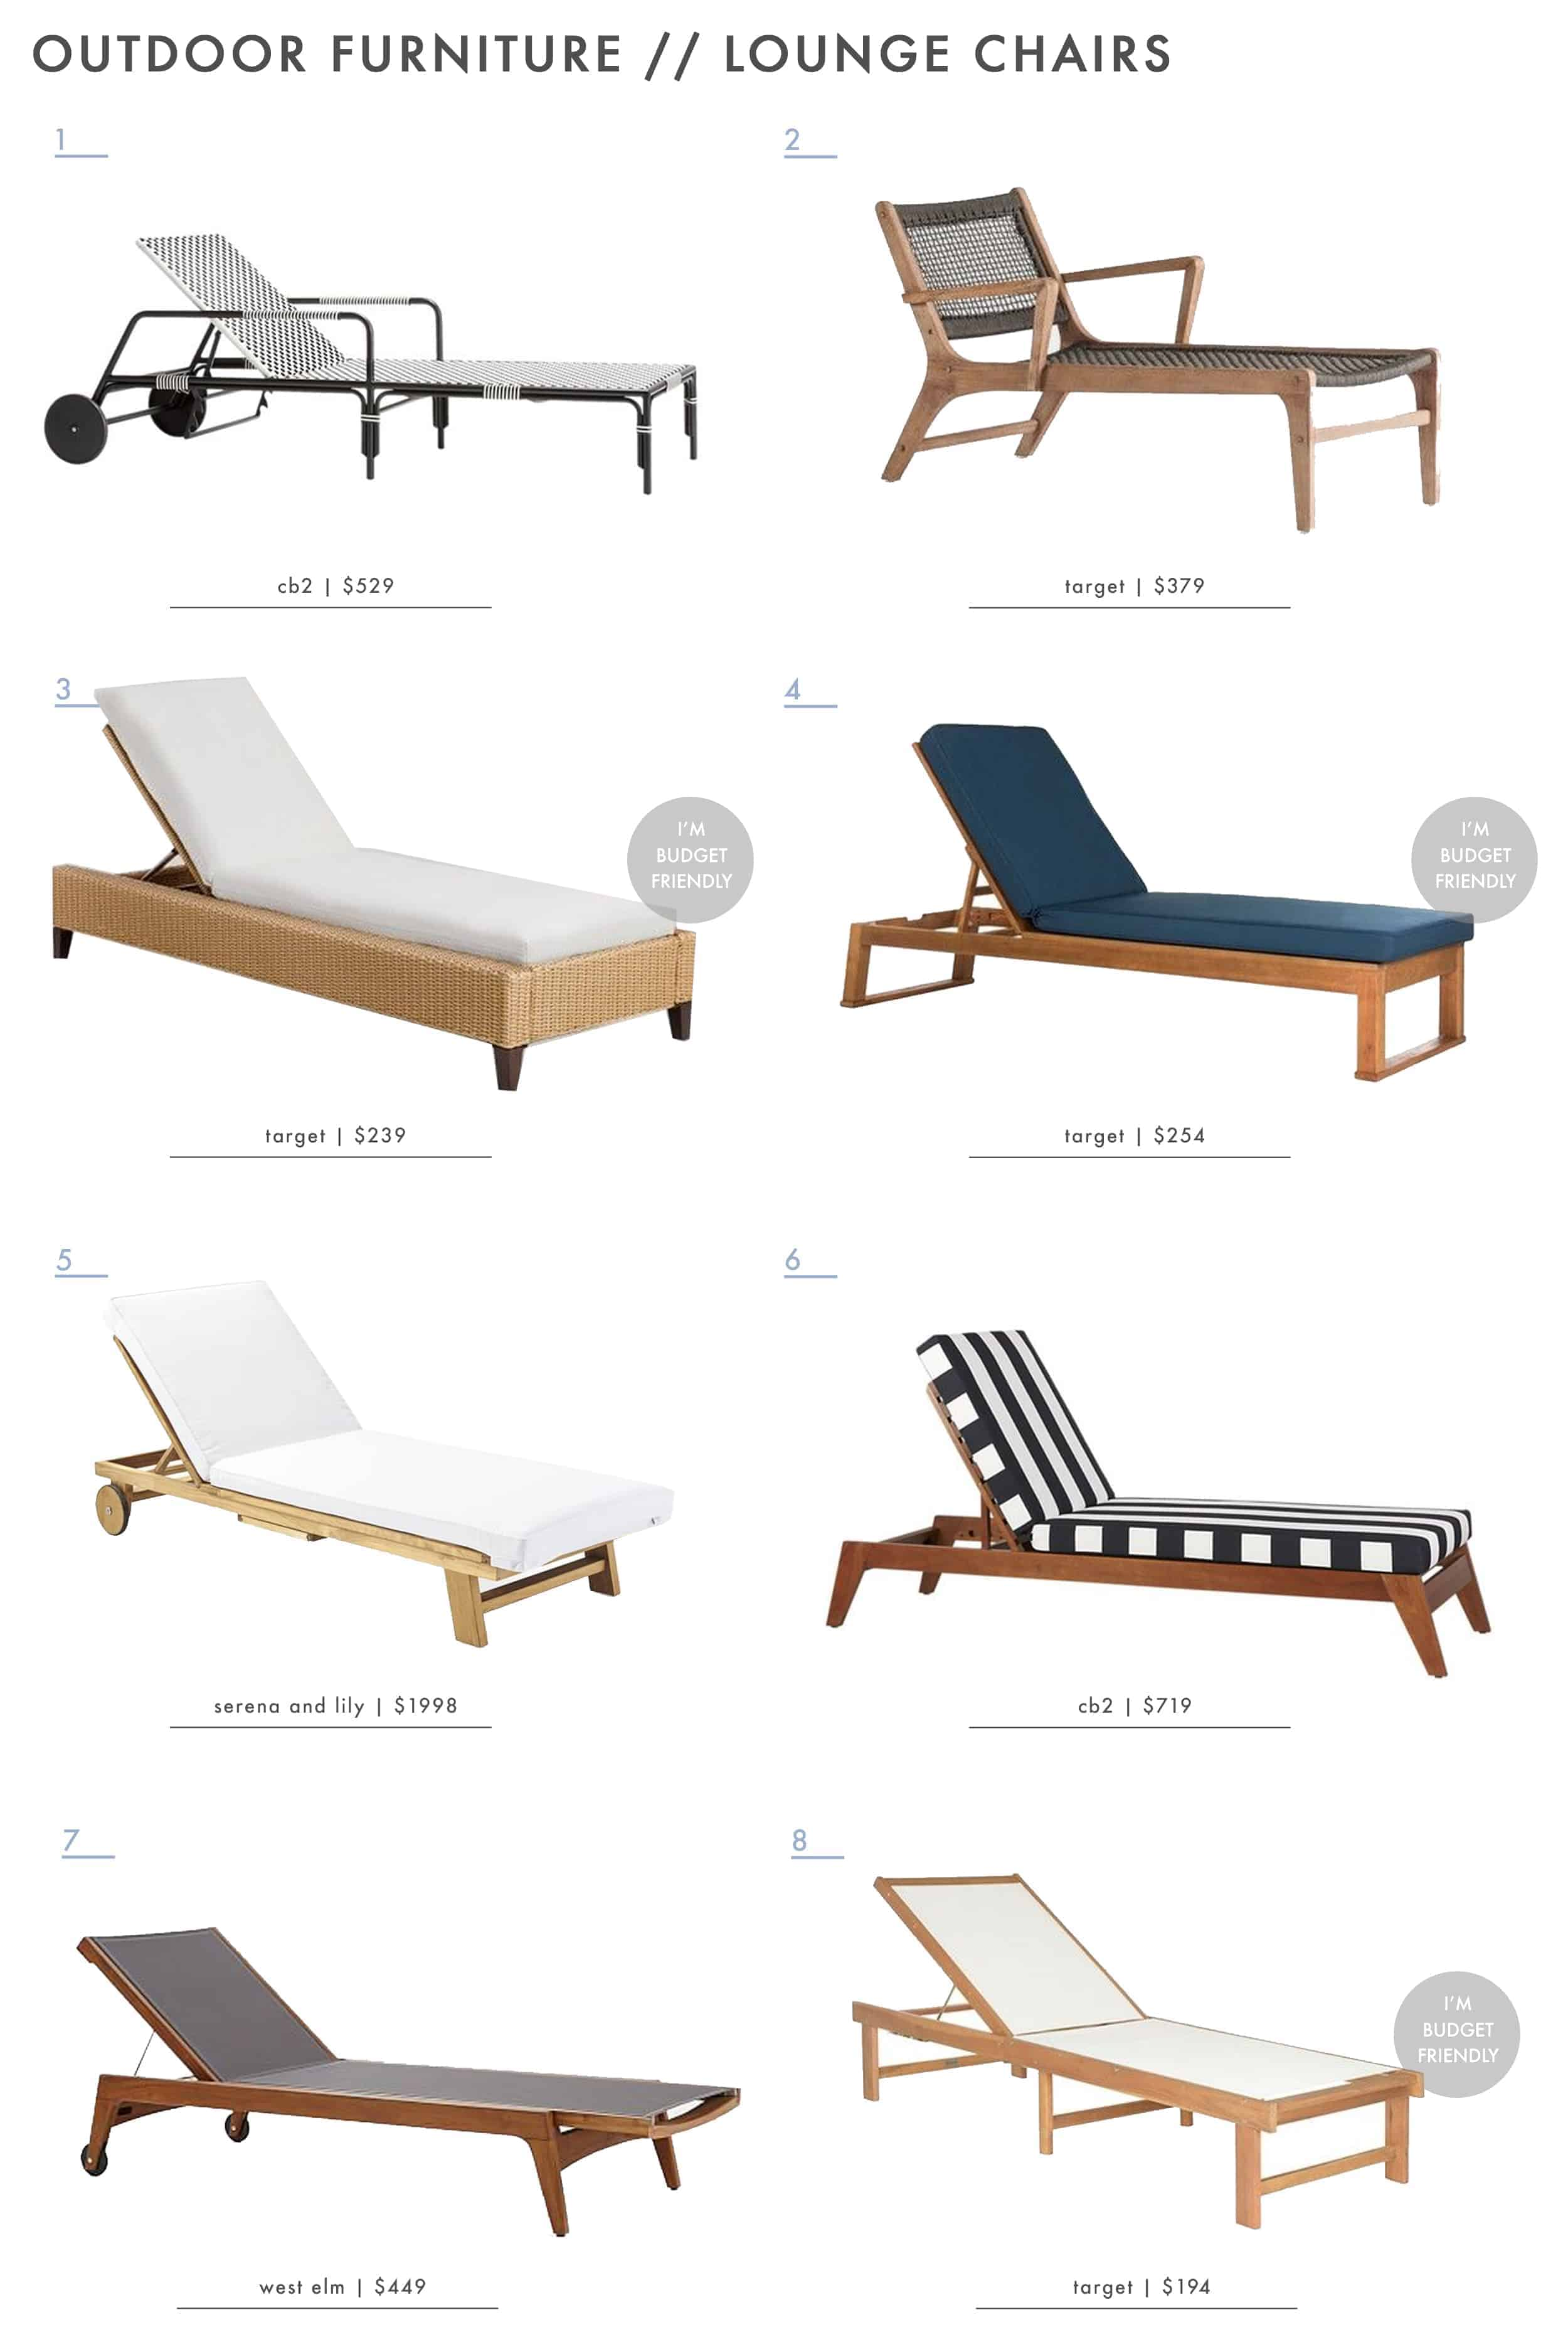 Outdoor Furniture Roundup Emily Henderson Lounge Furniture Lounge Chair Recliner Chaise1